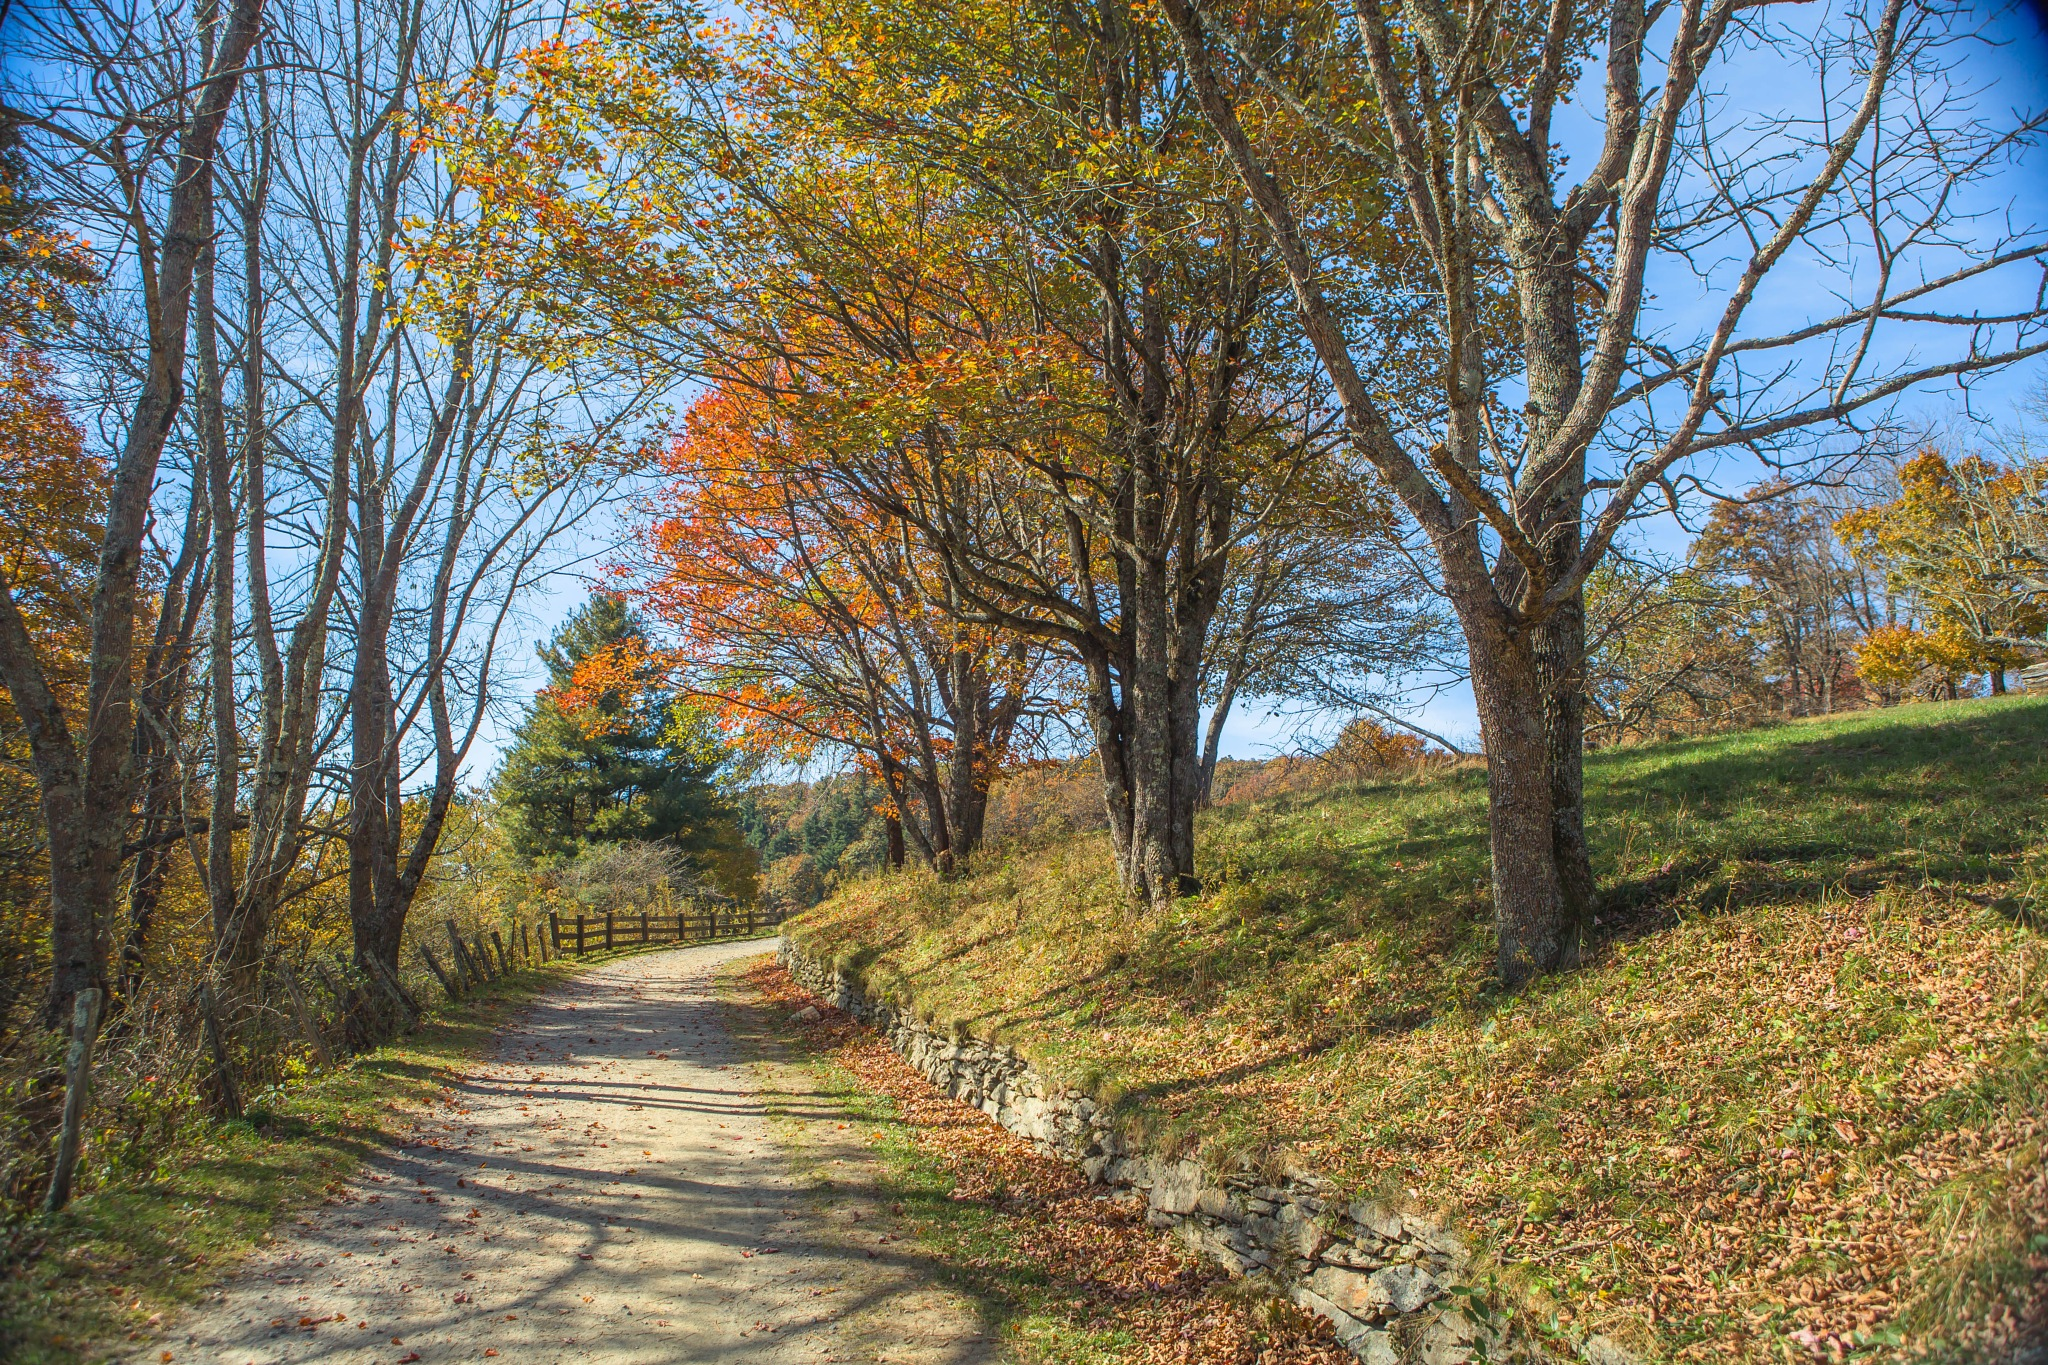 Autum's Road by timothybell1800